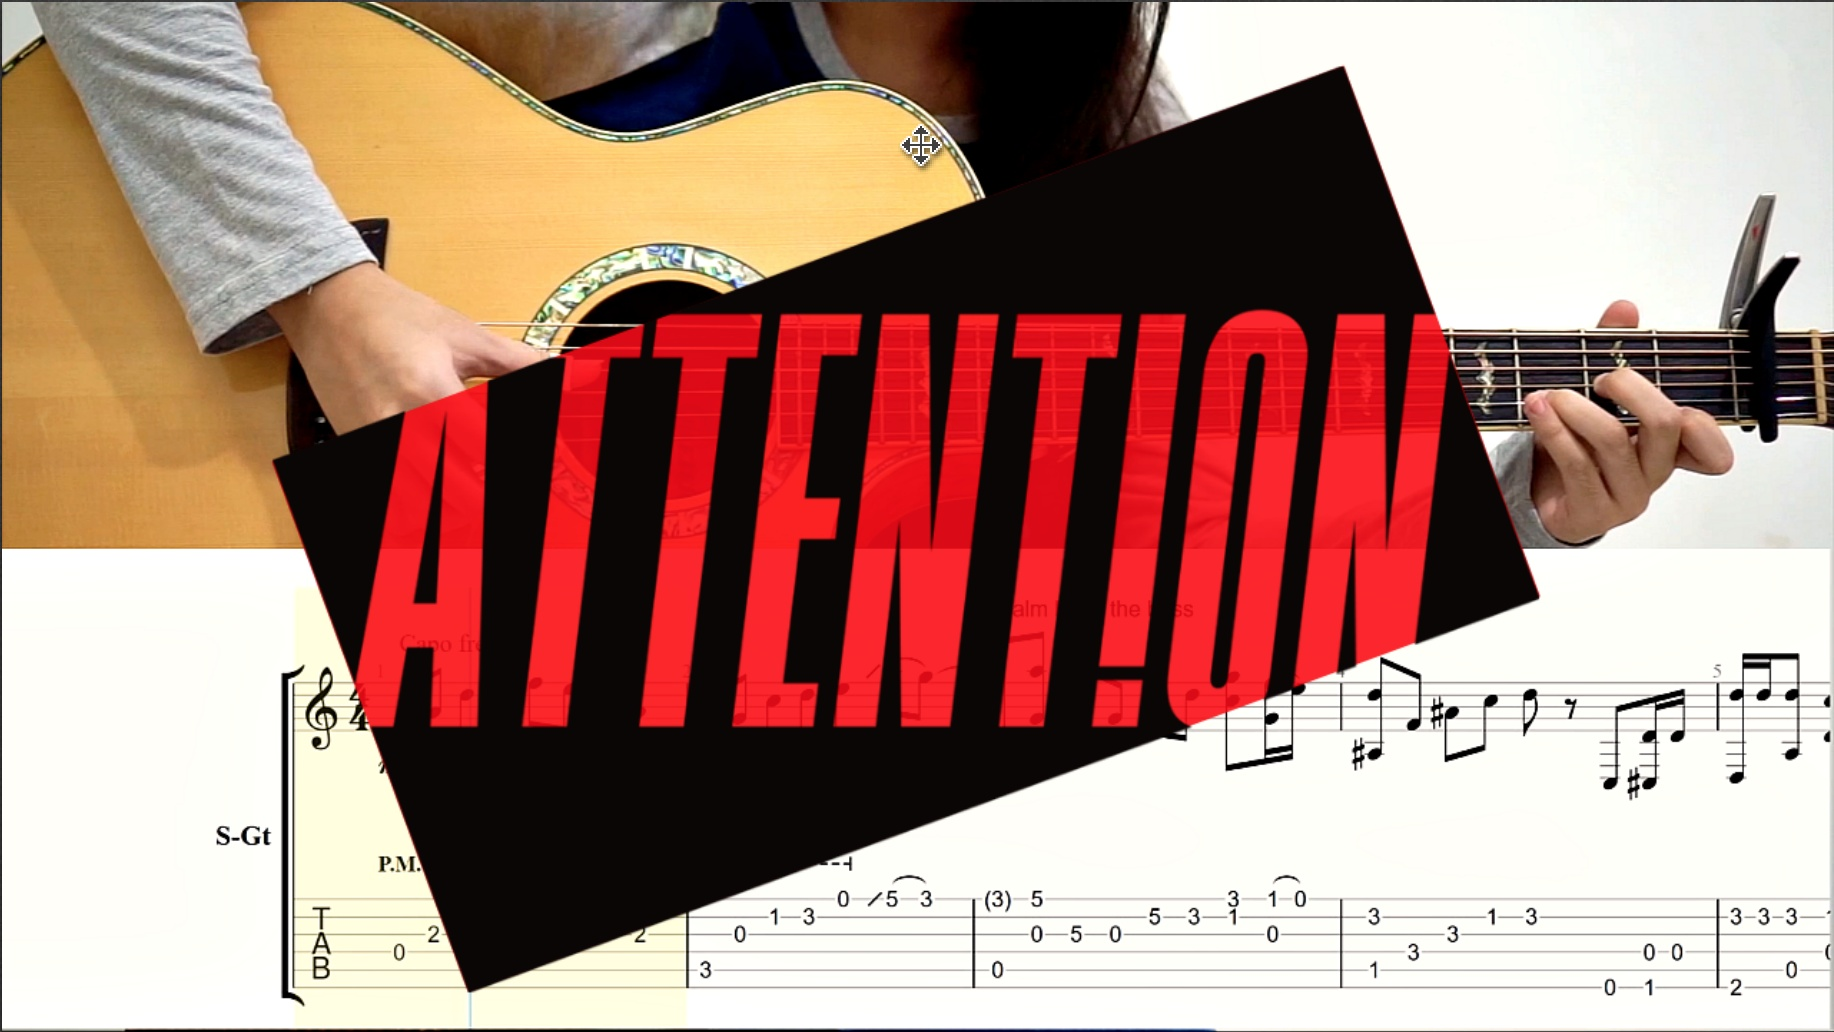 (Charlie Puth) Attention - Fingerstyle Guitar TABS [PDF]